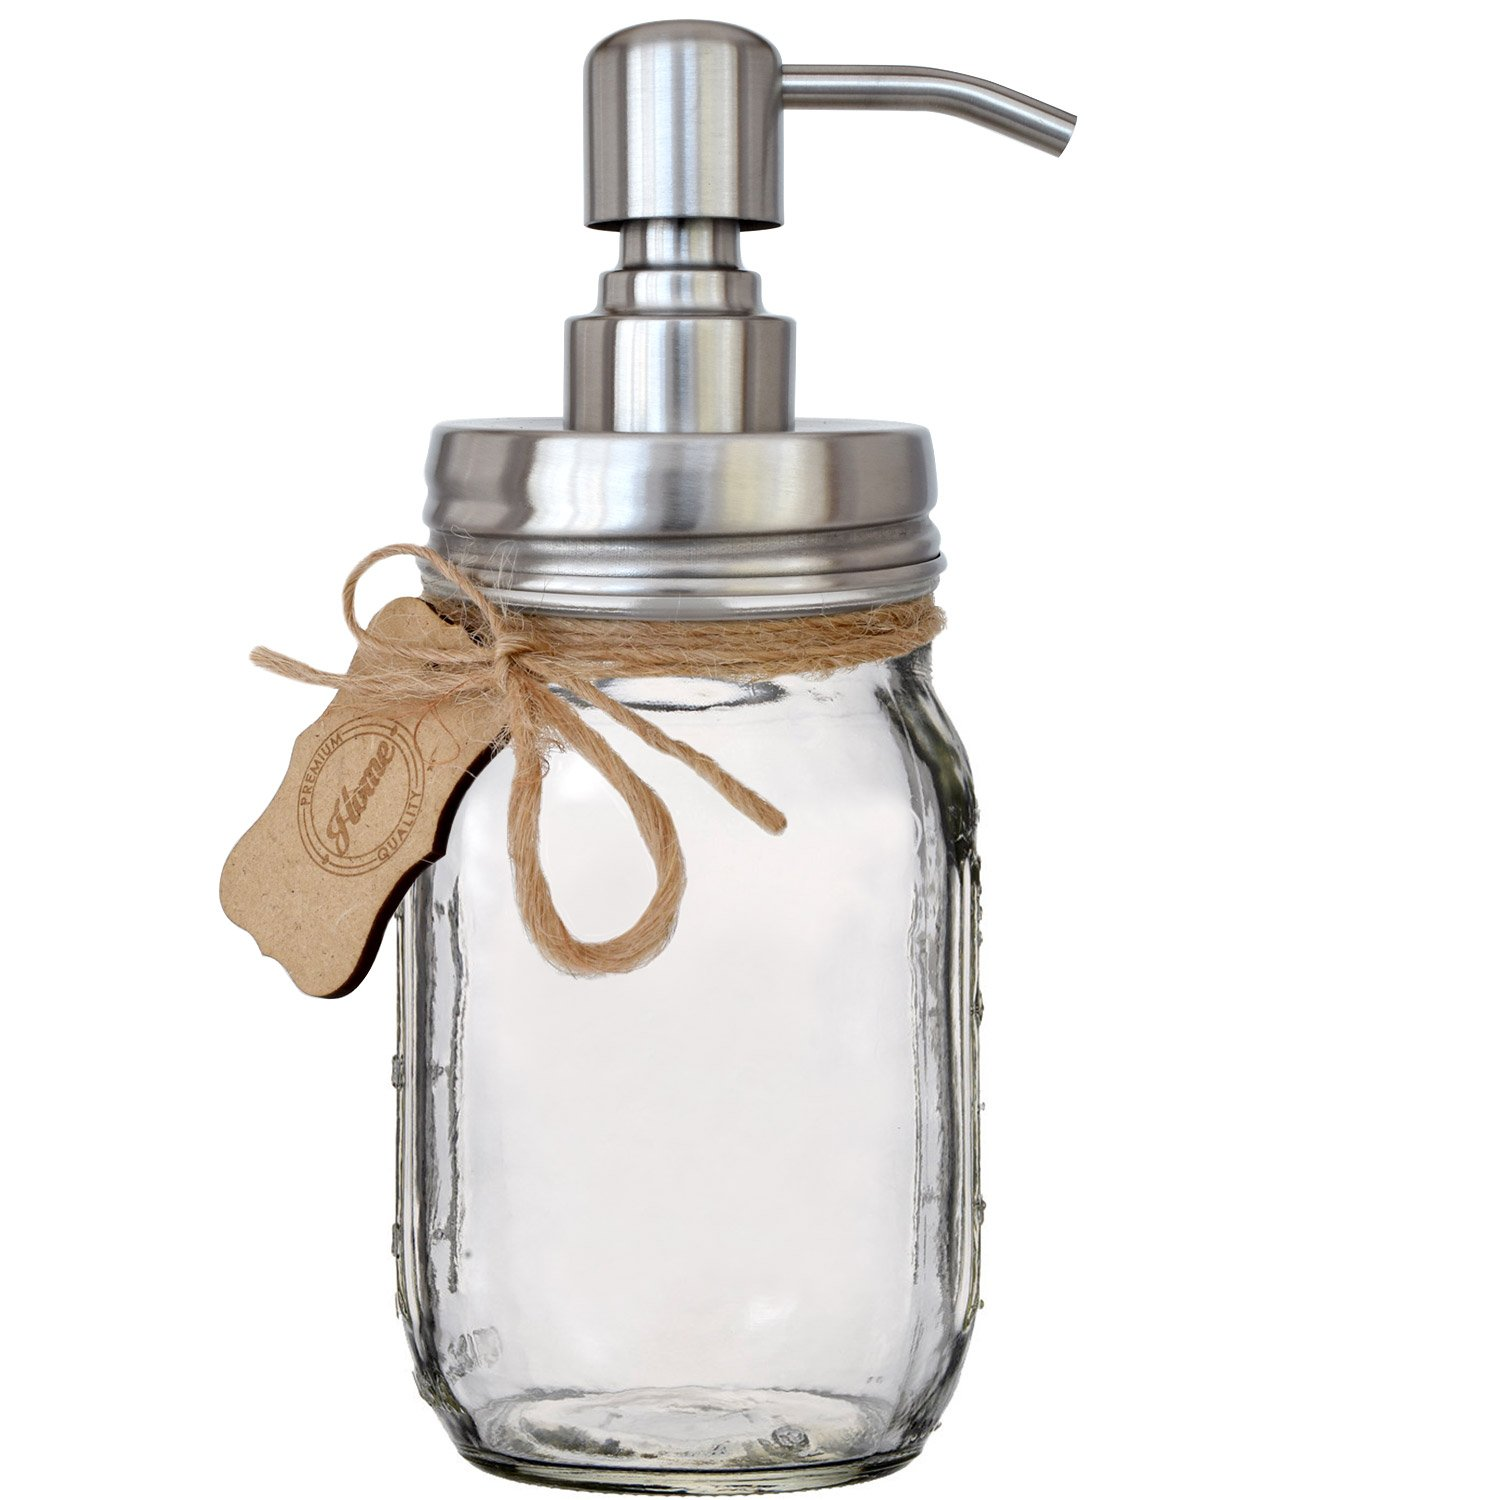 Premium Home Quality Premium Rust Resistant 304 18/8 Stainless Steel Mason Jar Soap Pump/Lotion Dispenser Kit by Includes 16 oz (Regular Mouth) Glass Mason Jar (Brushed Stainless Steel)